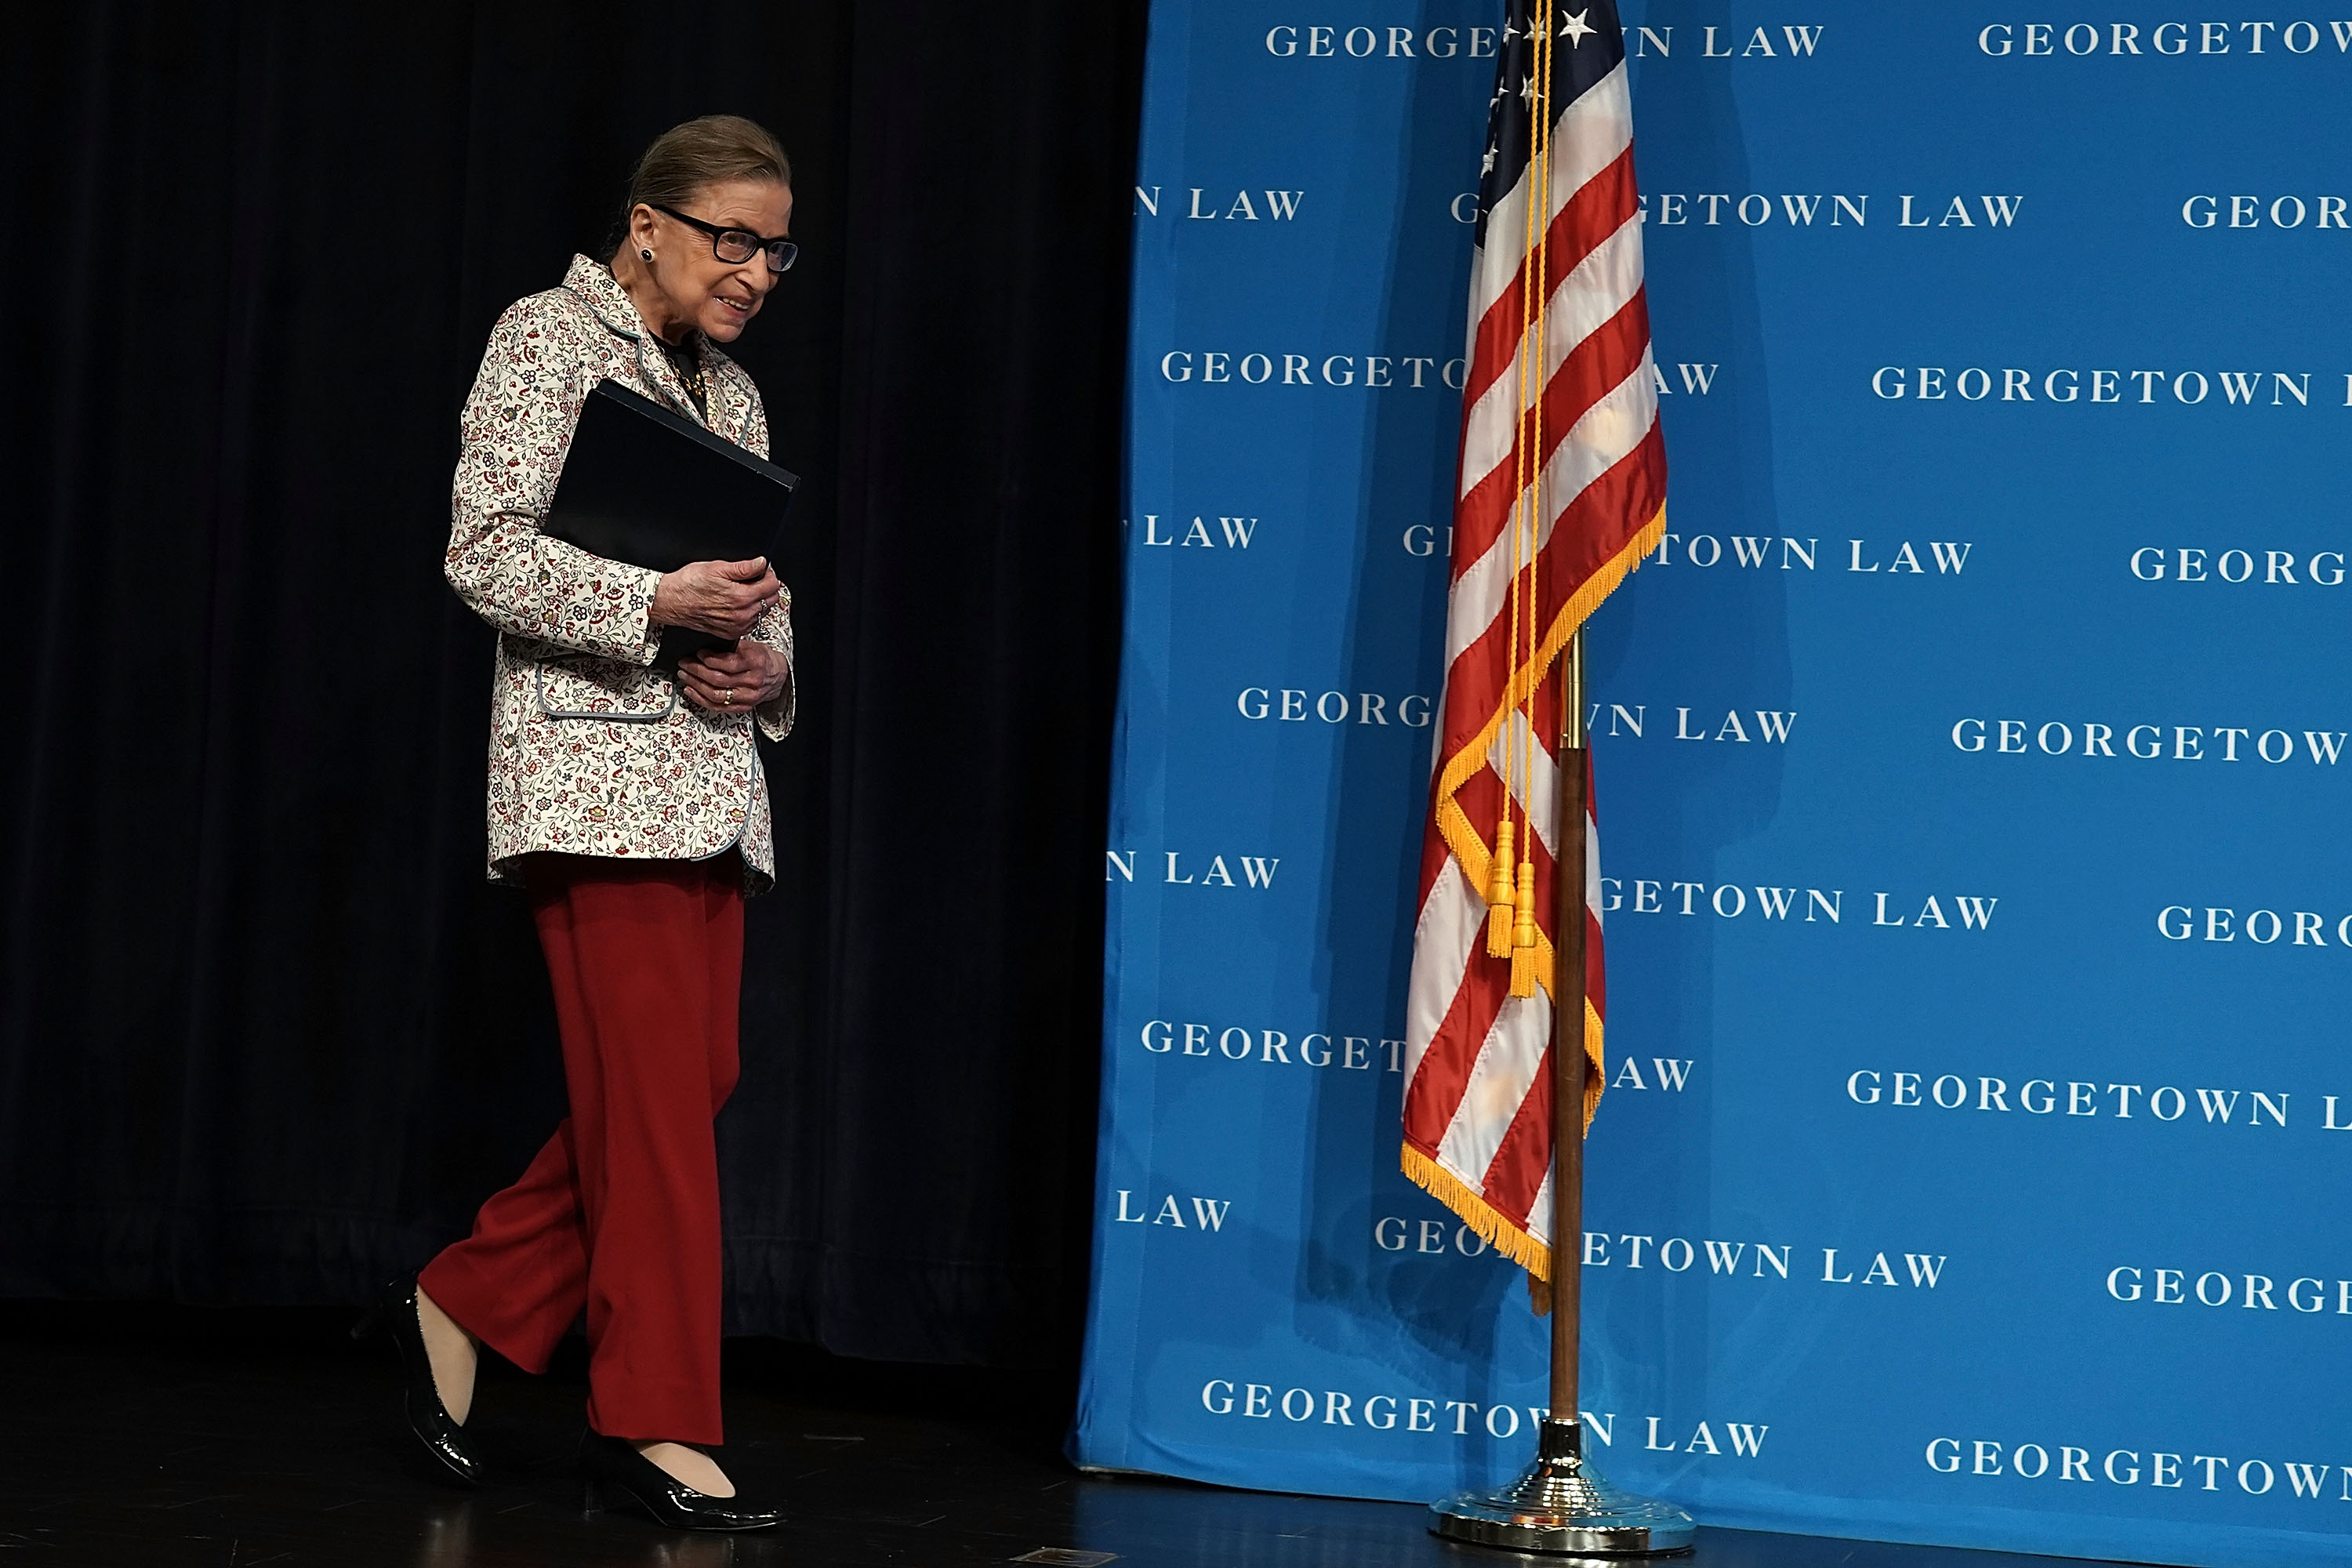 Supreme Court Justice Ruth Bader Ginsburg arrives at a lecture at Georgetown University Law Center on September 26, 2018. (Alex Wong/Getty Images)